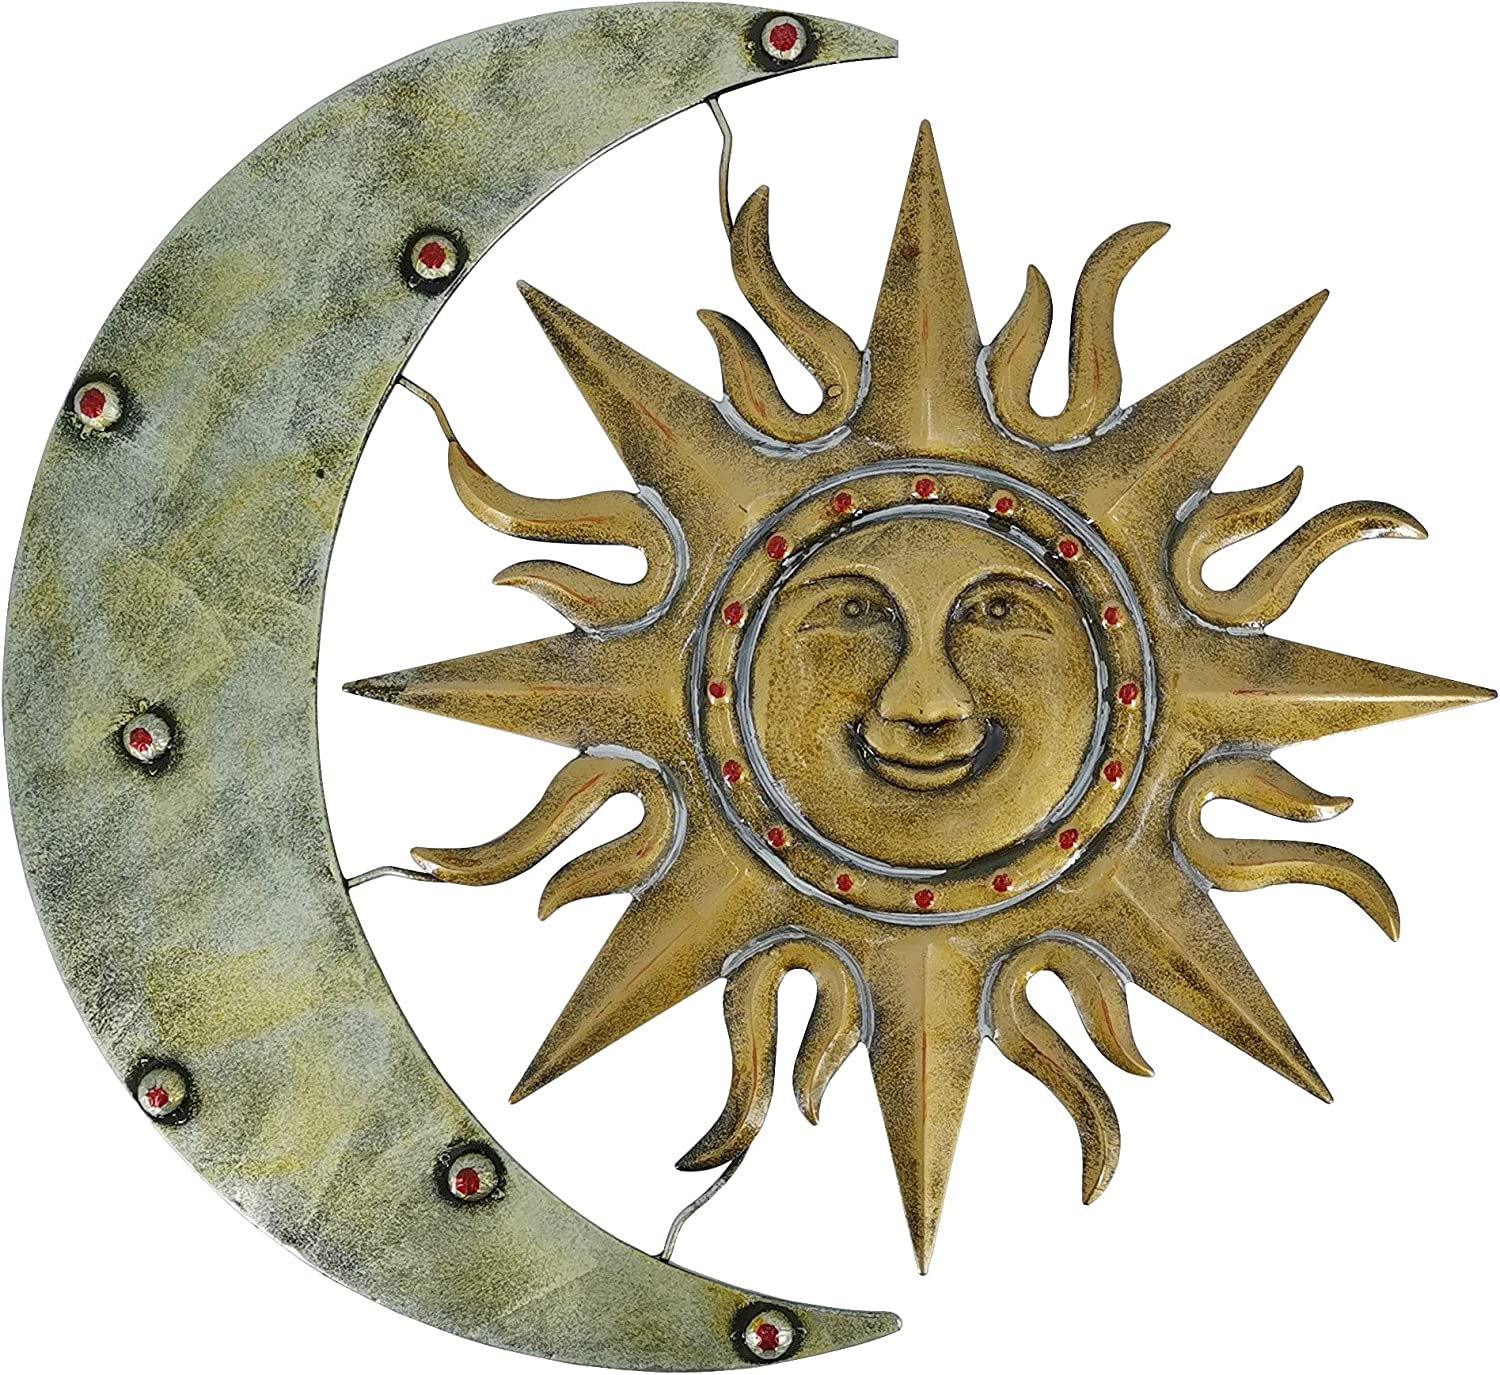 Aztec Sun And Moon Metal Wall Dec Decor Ranking Be super welcome TOP12 and